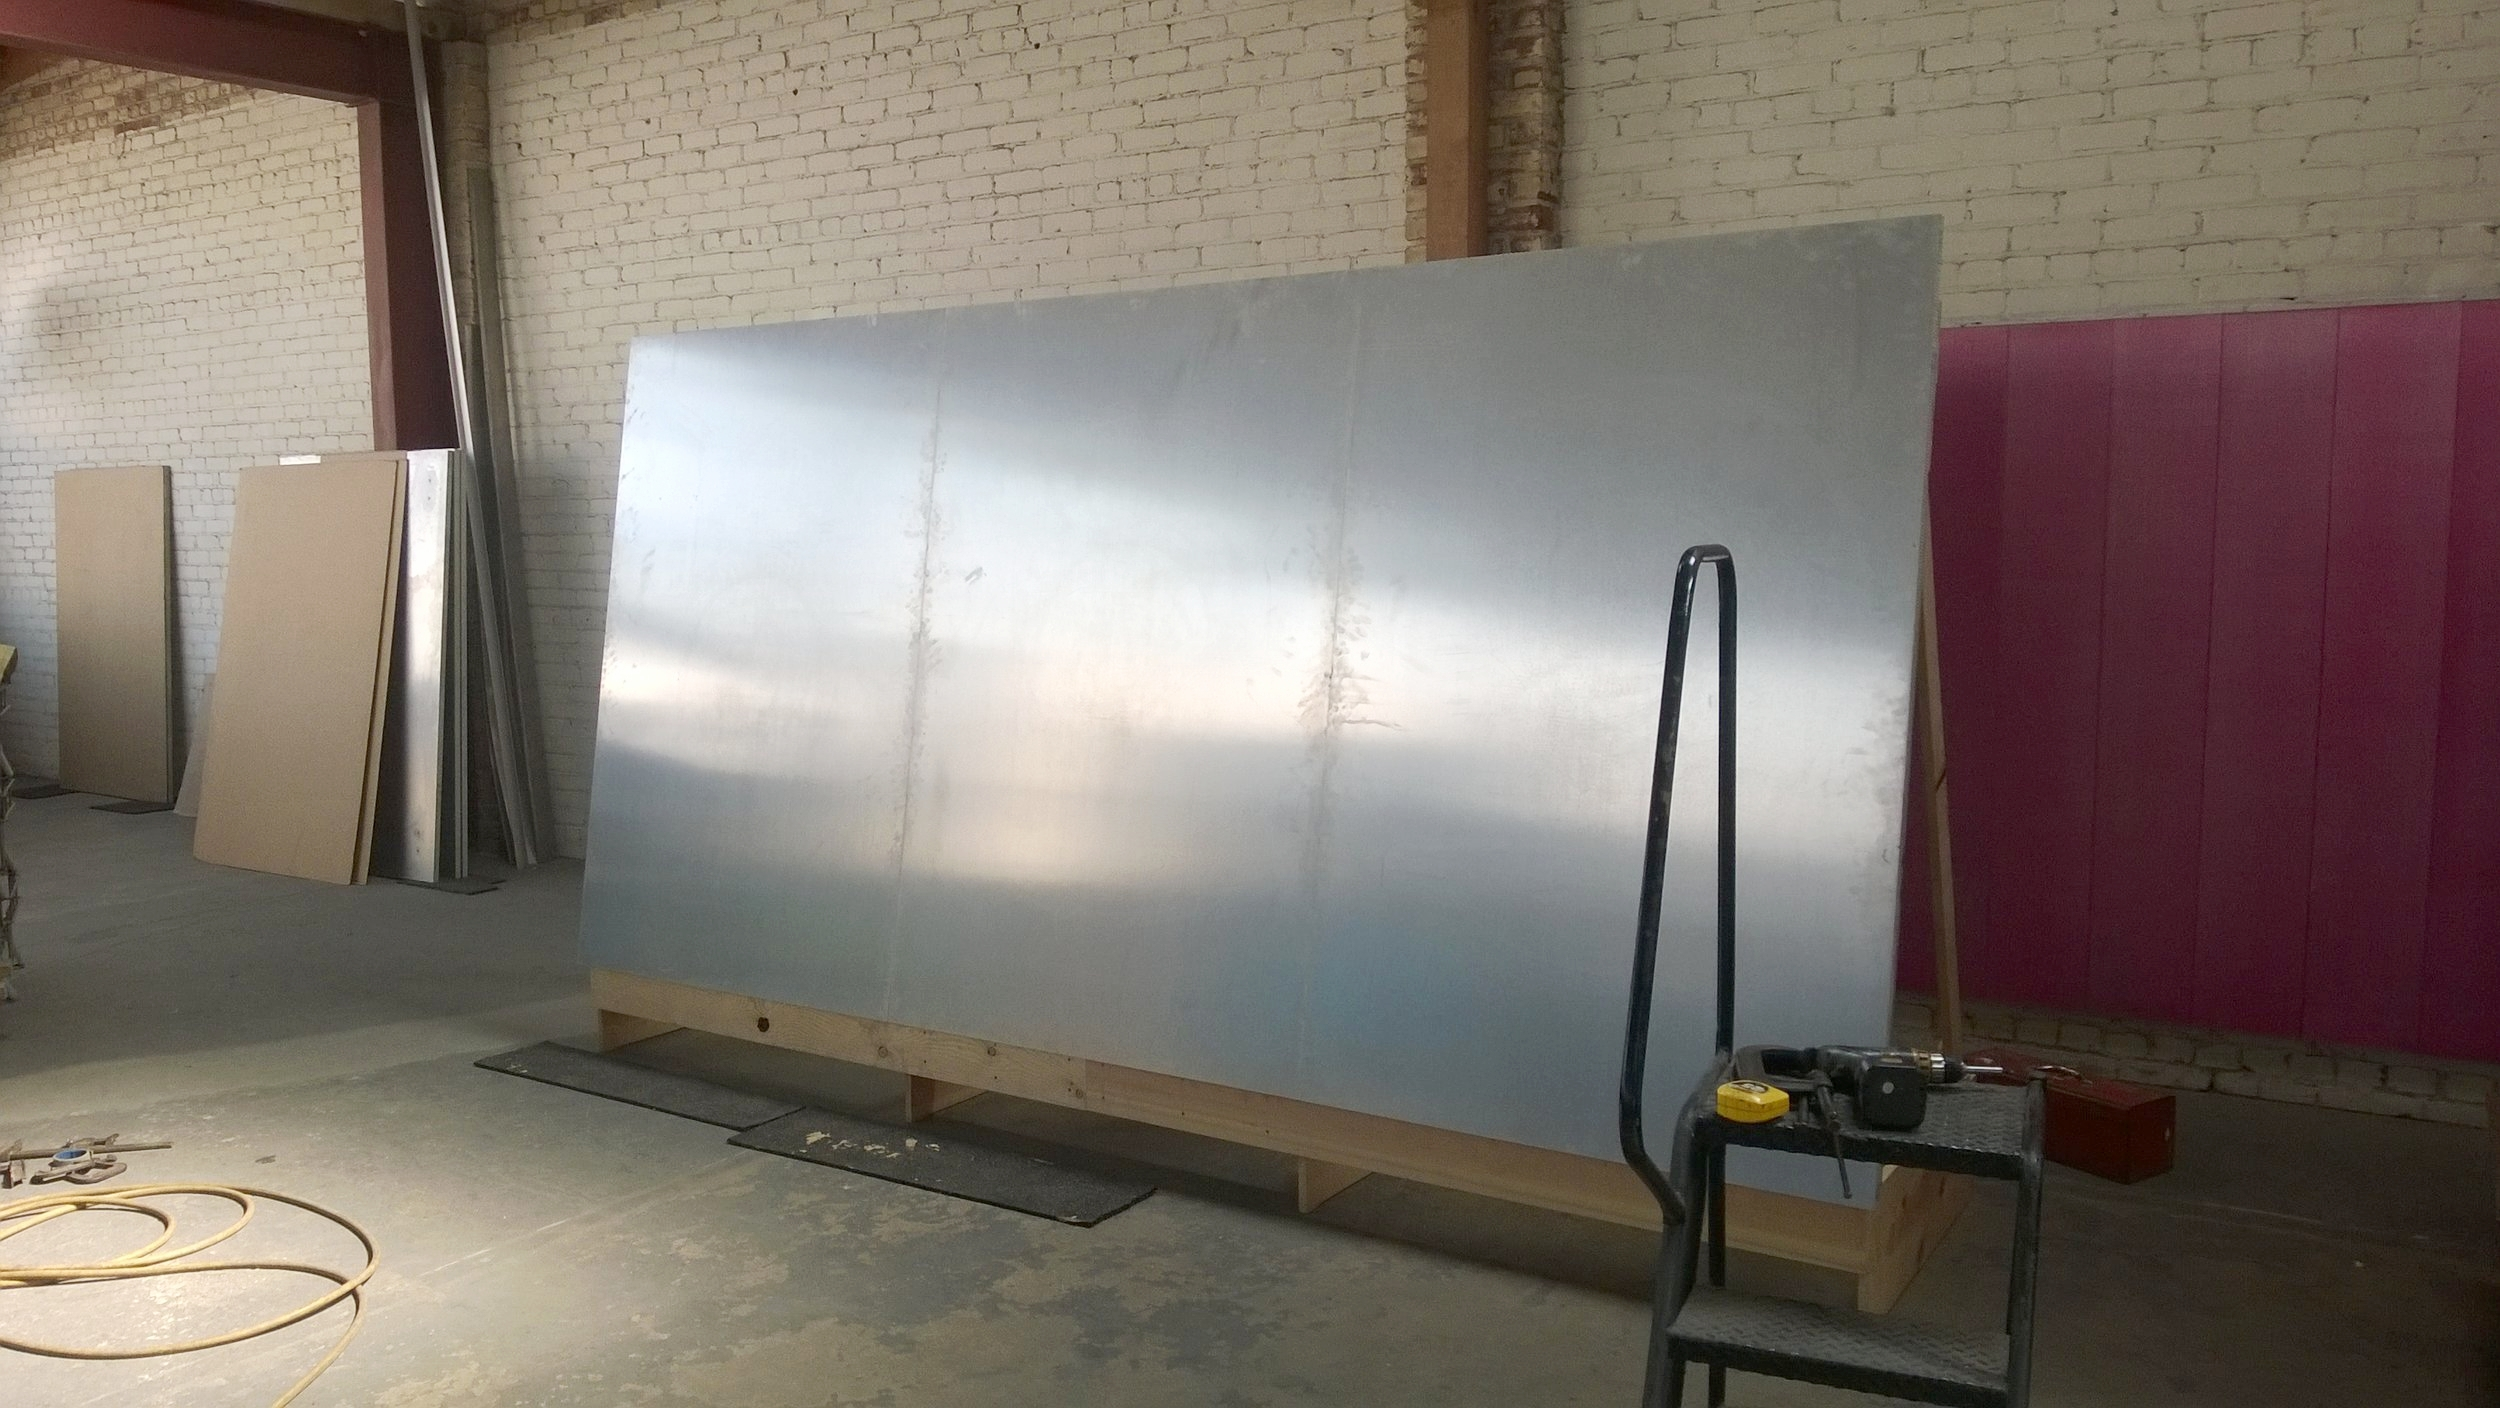 Panel fabrication complete